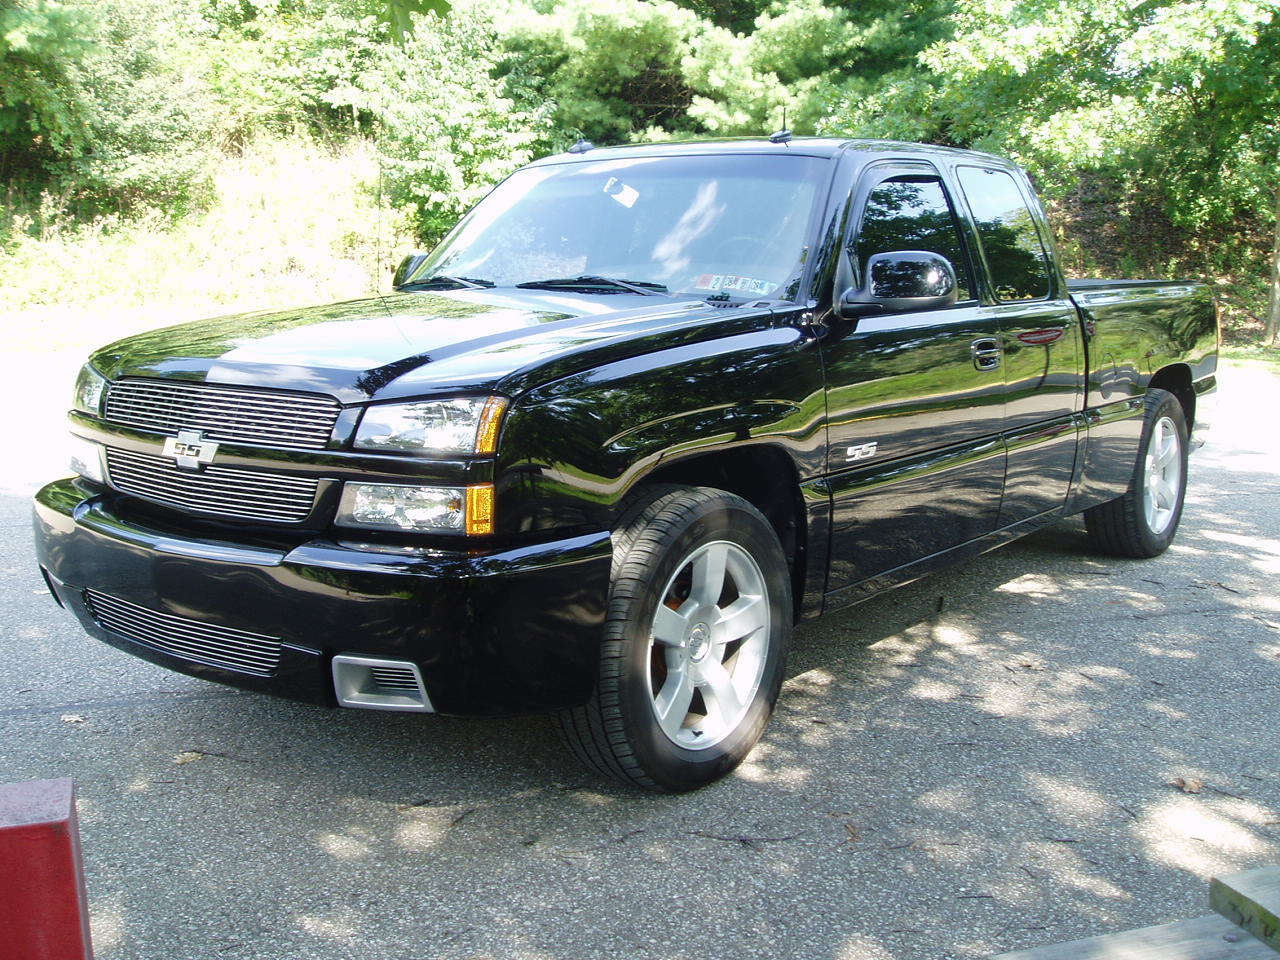 appglecturas chevy silverado ss lowered images. Black Bedroom Furniture Sets. Home Design Ideas